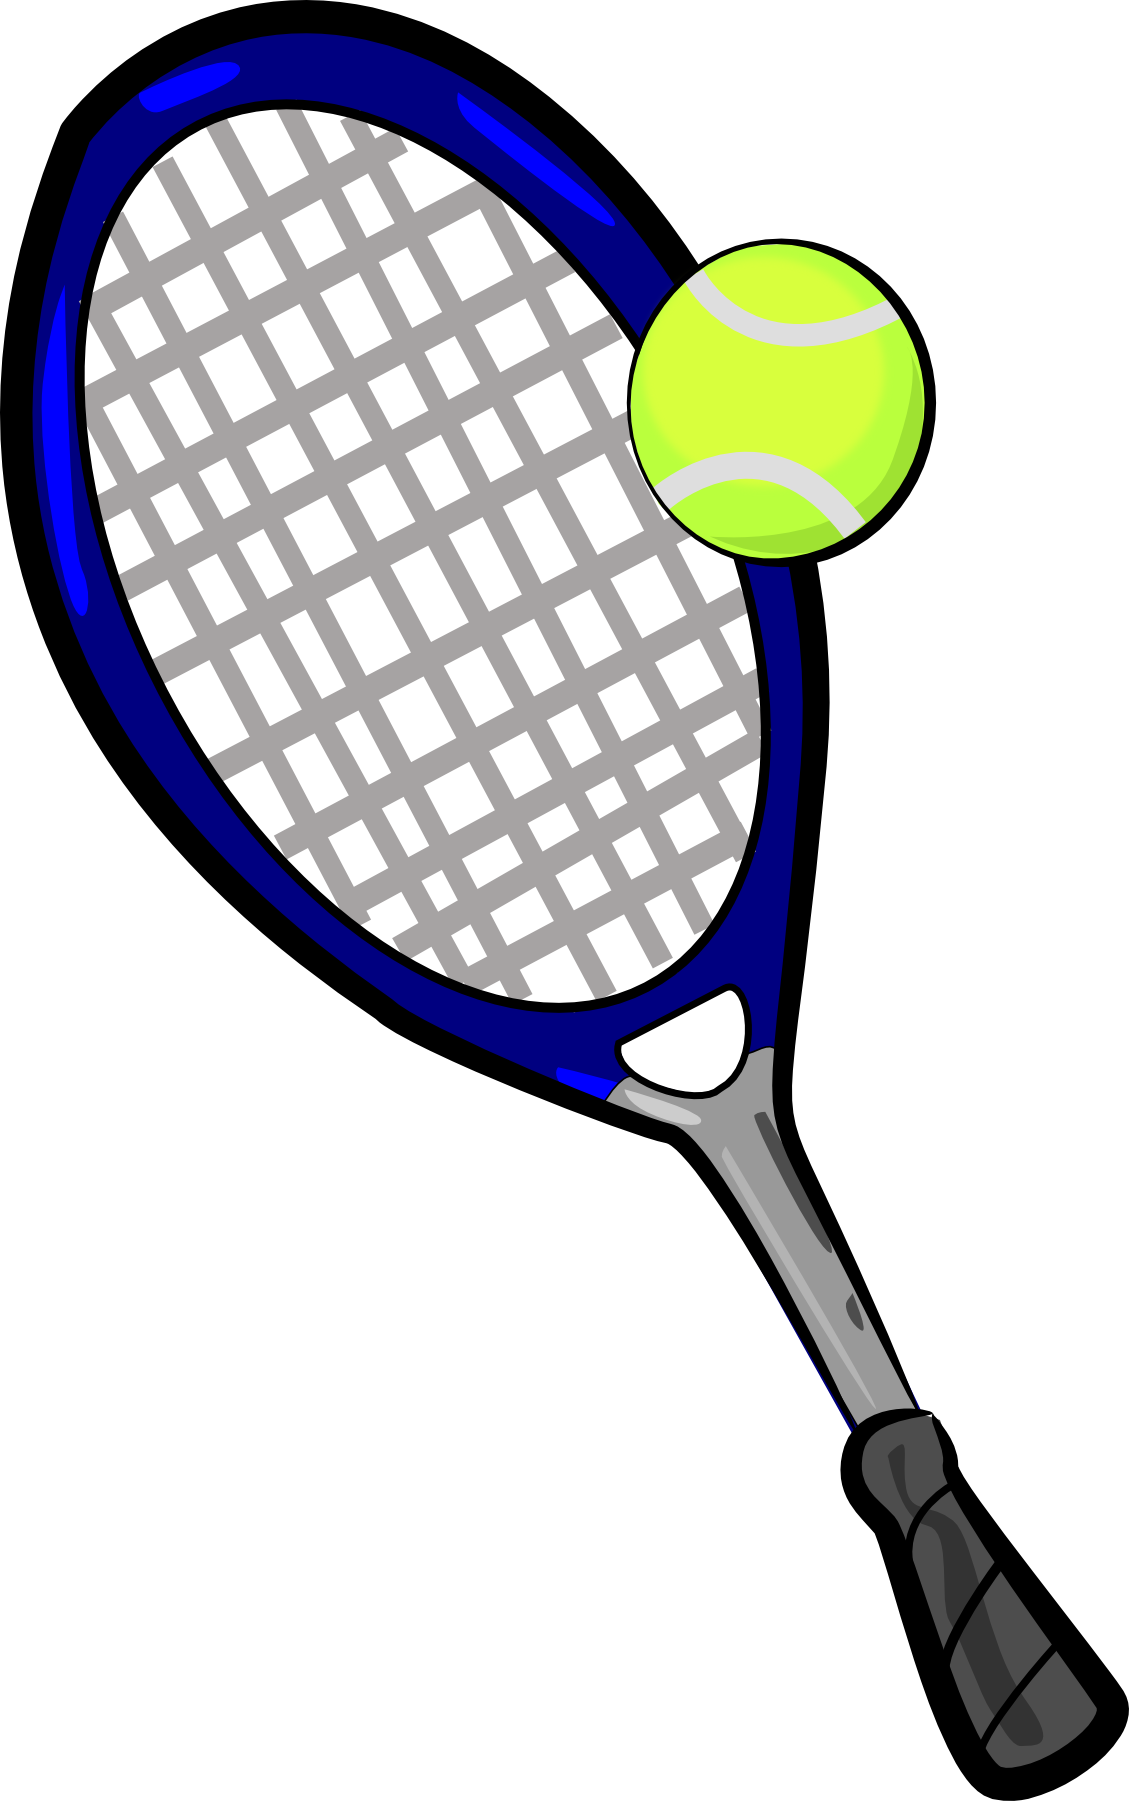 Images For > Tennis Racket And Ball Clip Art